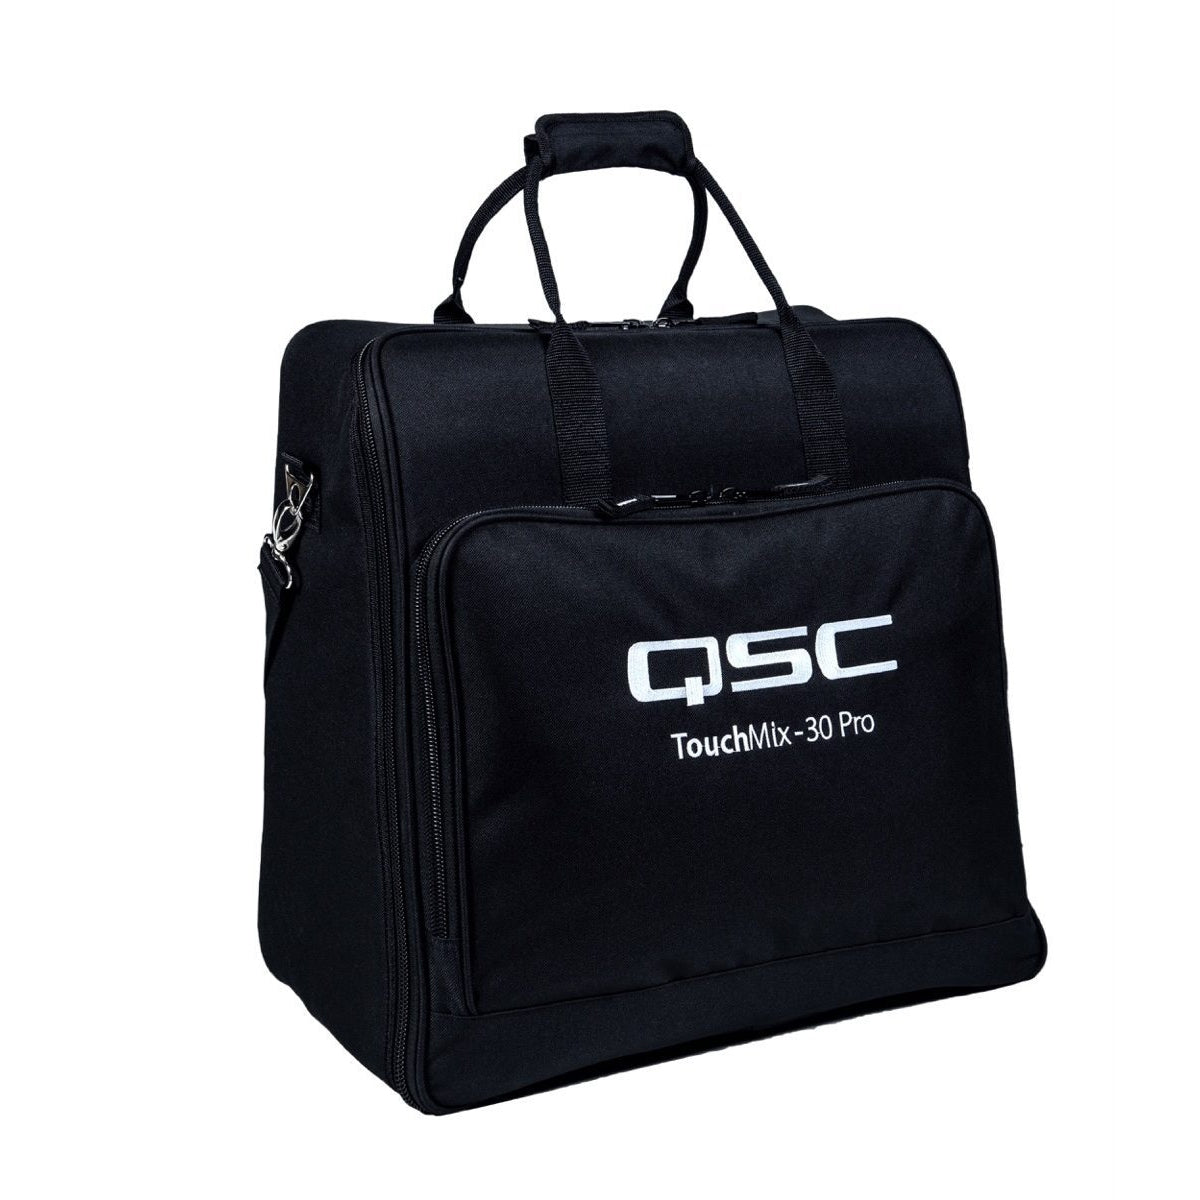 QSC TM-30 Tote TouchMix-30 Pro Heavy-Duty Bag